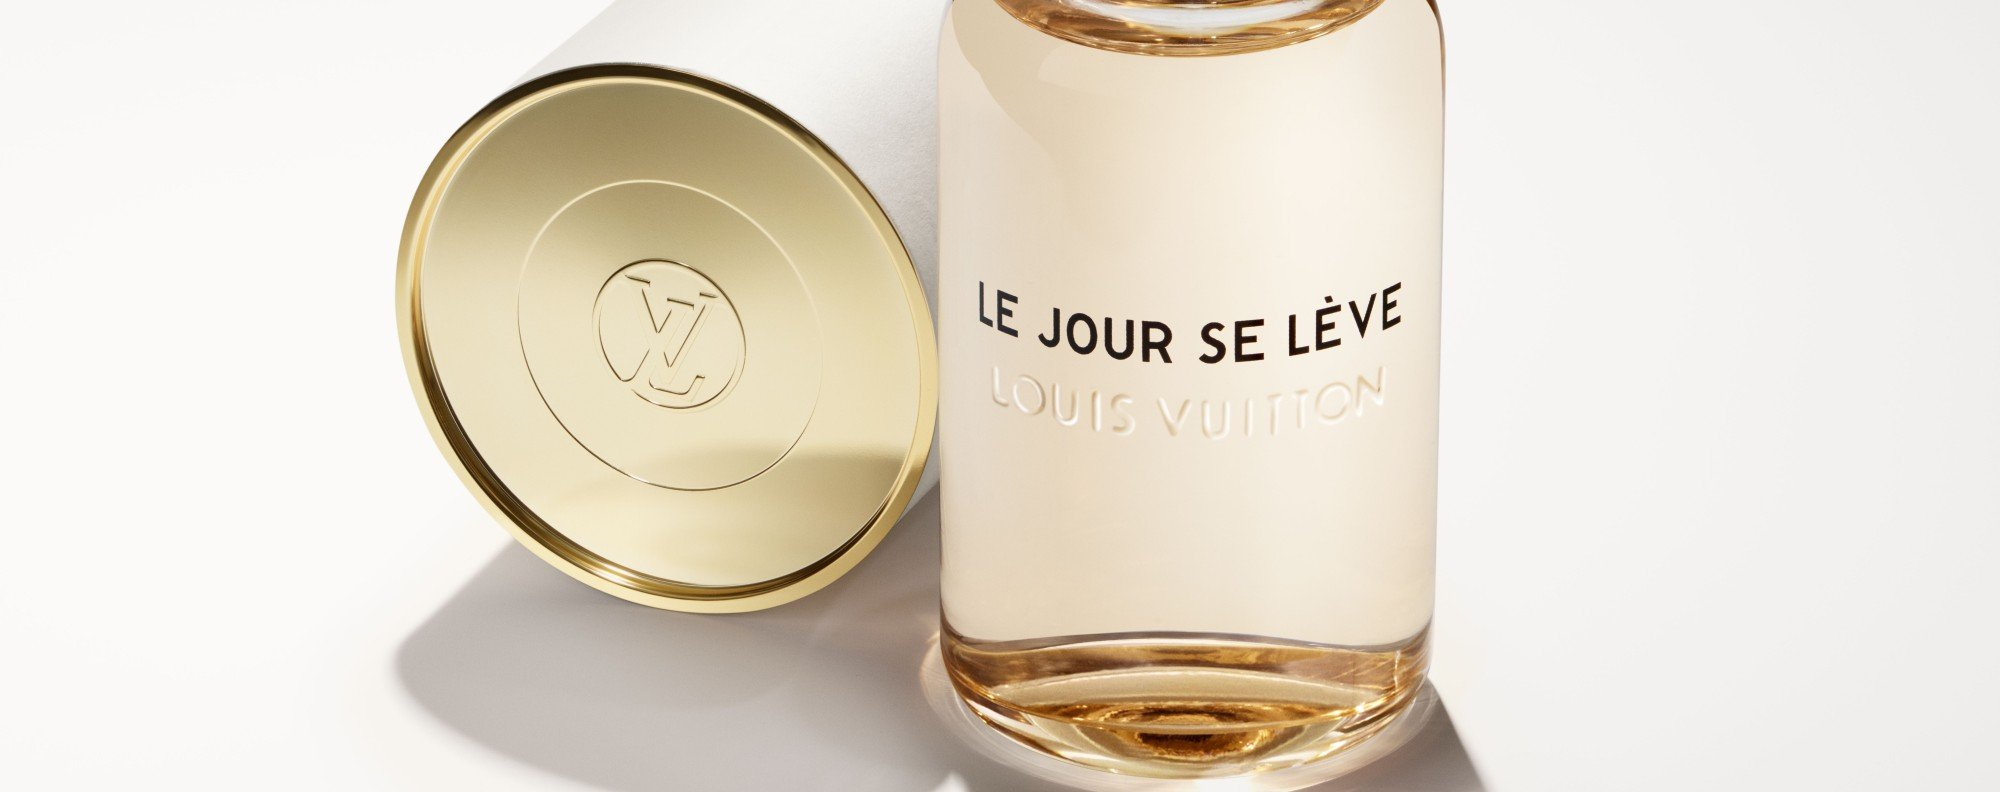 The new Louis Vuitton fragrance, Le Jour se Lève, goes on sale from March 15.